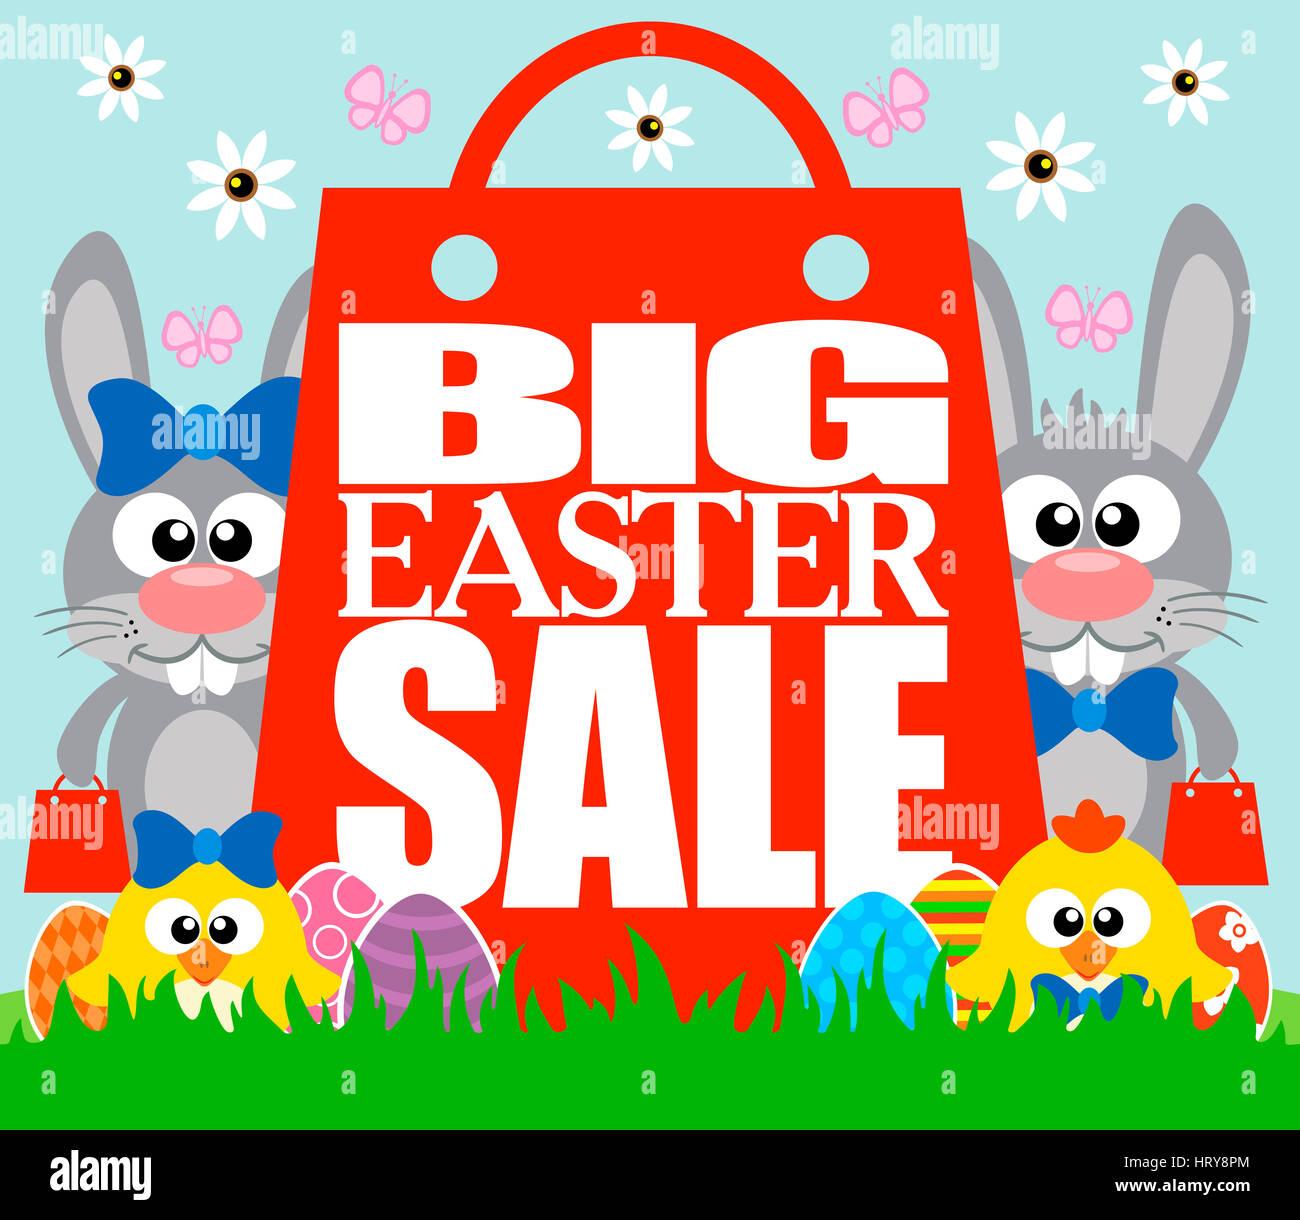 Big Easter Sale card with funny chickens and rabbits - Stock Image